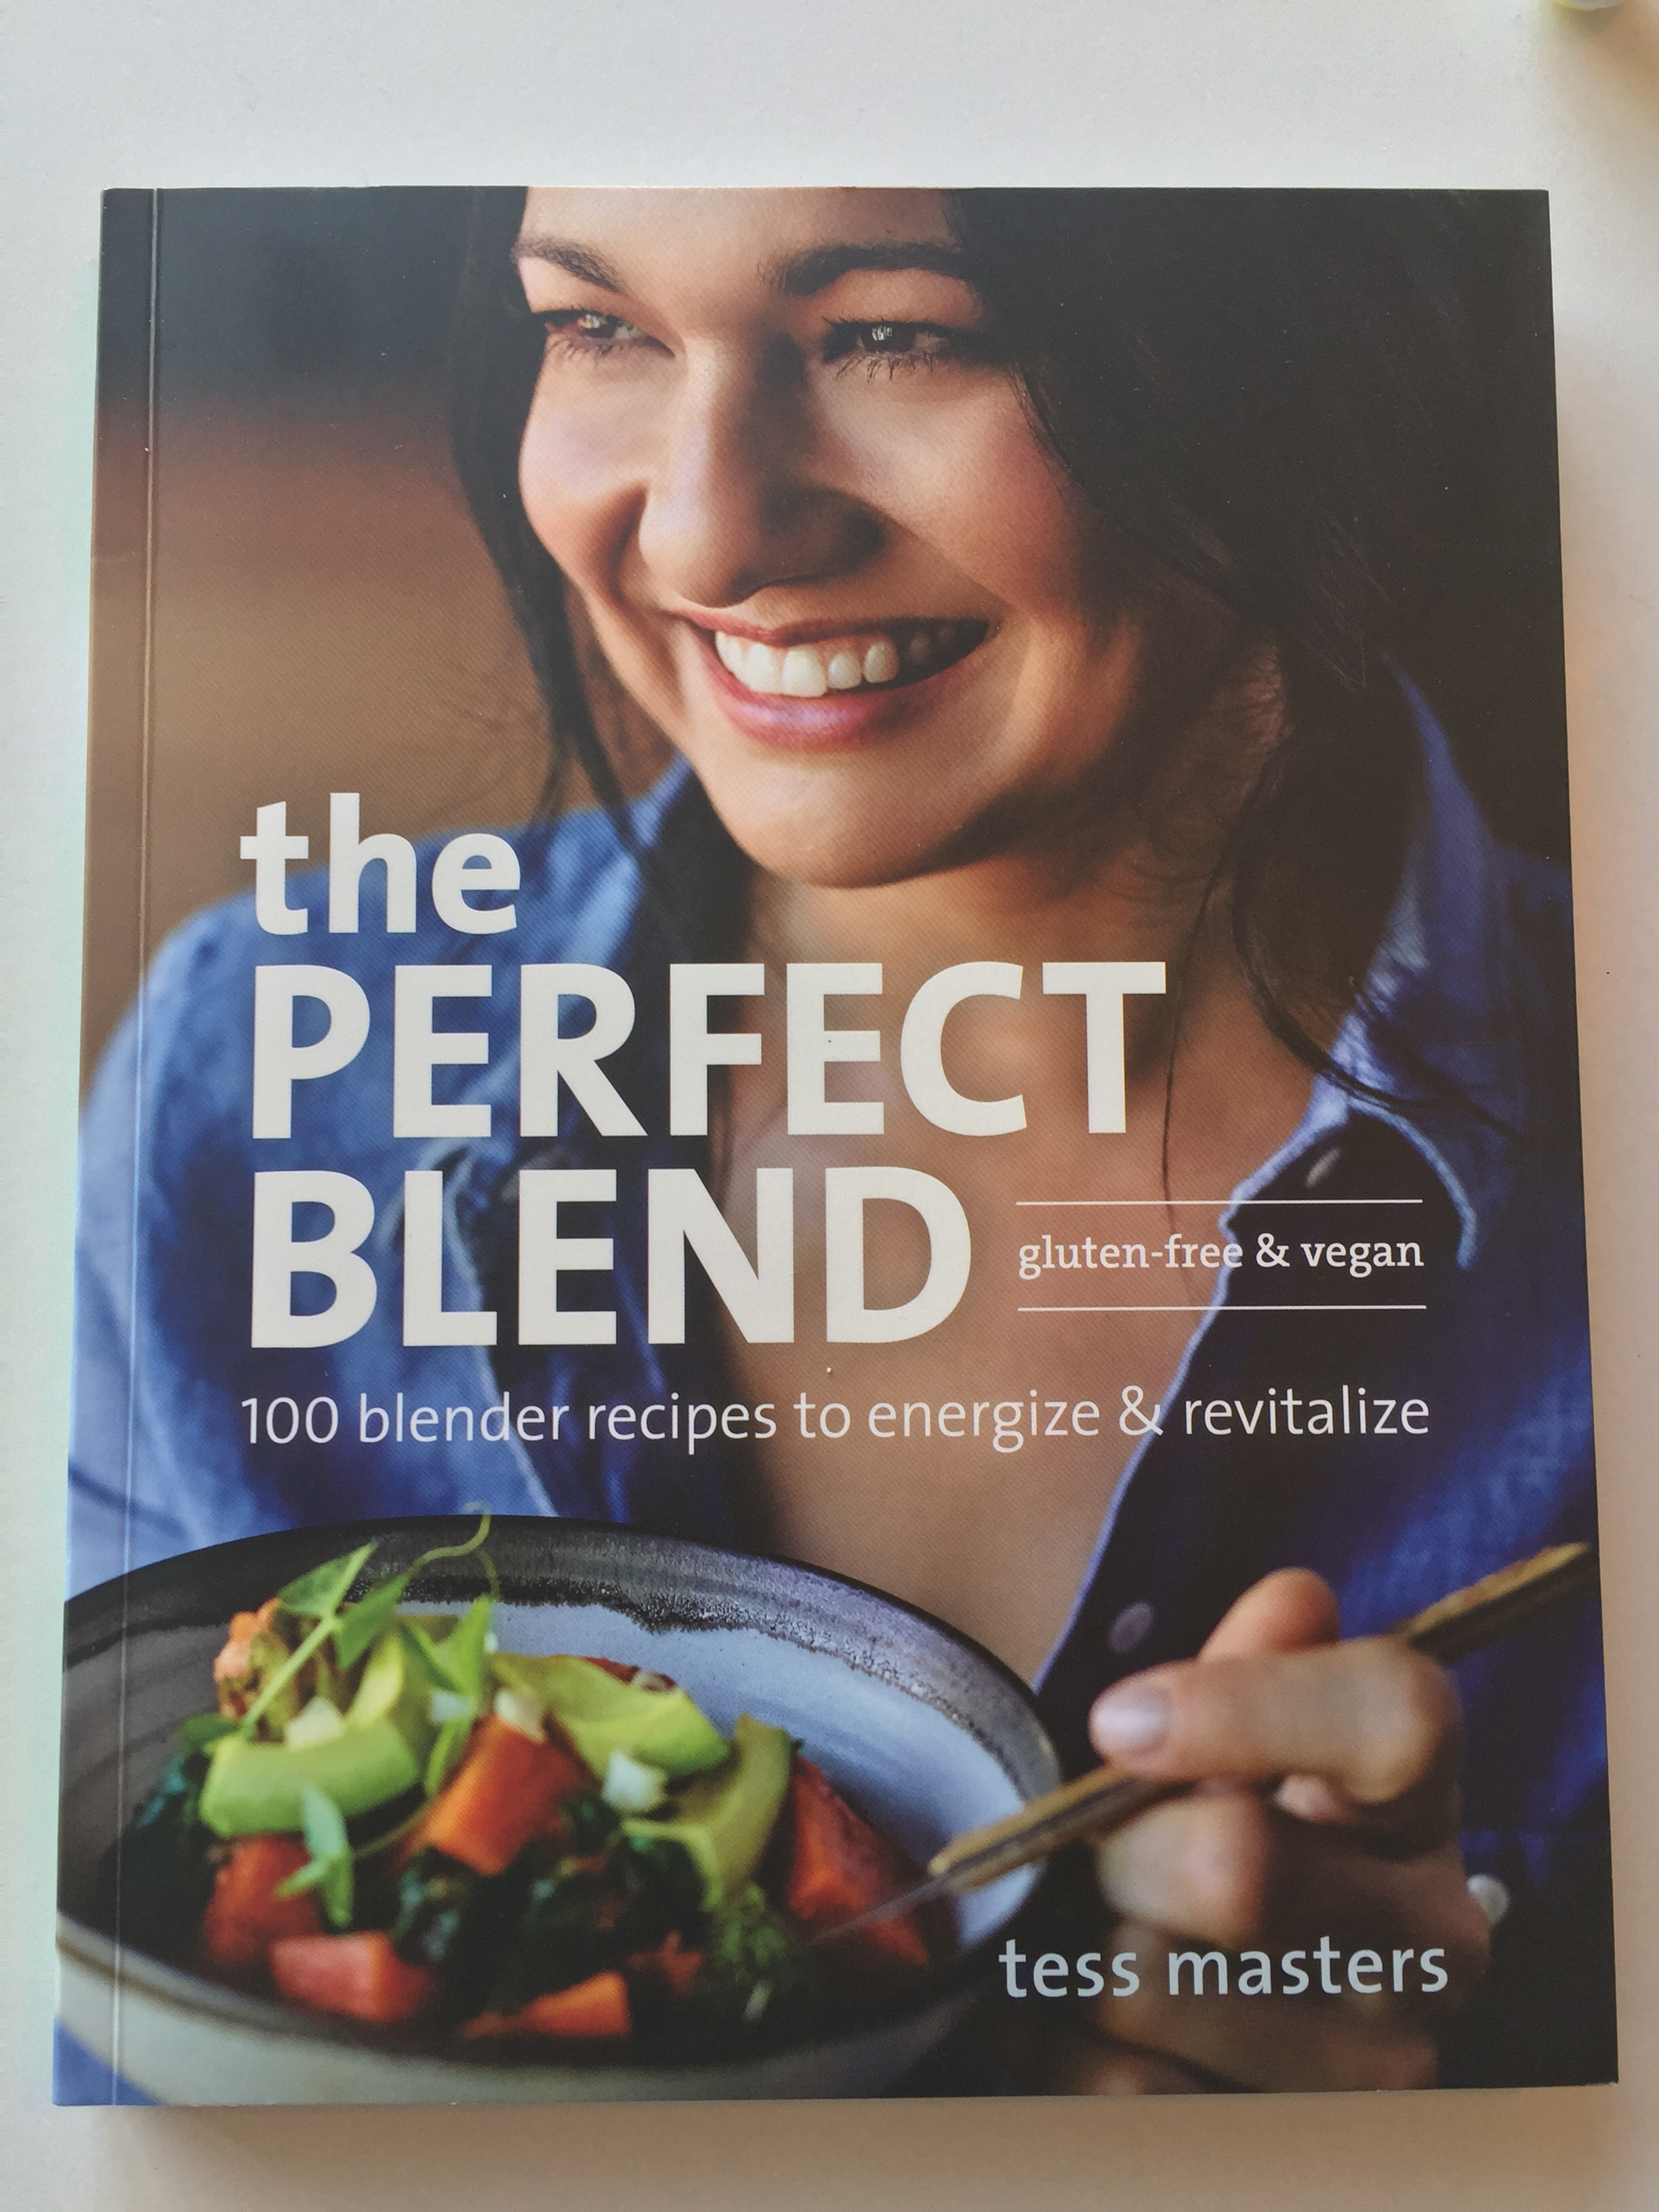 The Perfect Blend by Tess Masters. Published December 2016 by Ten Speed Press, an imprint of Penguin Random House LLC.